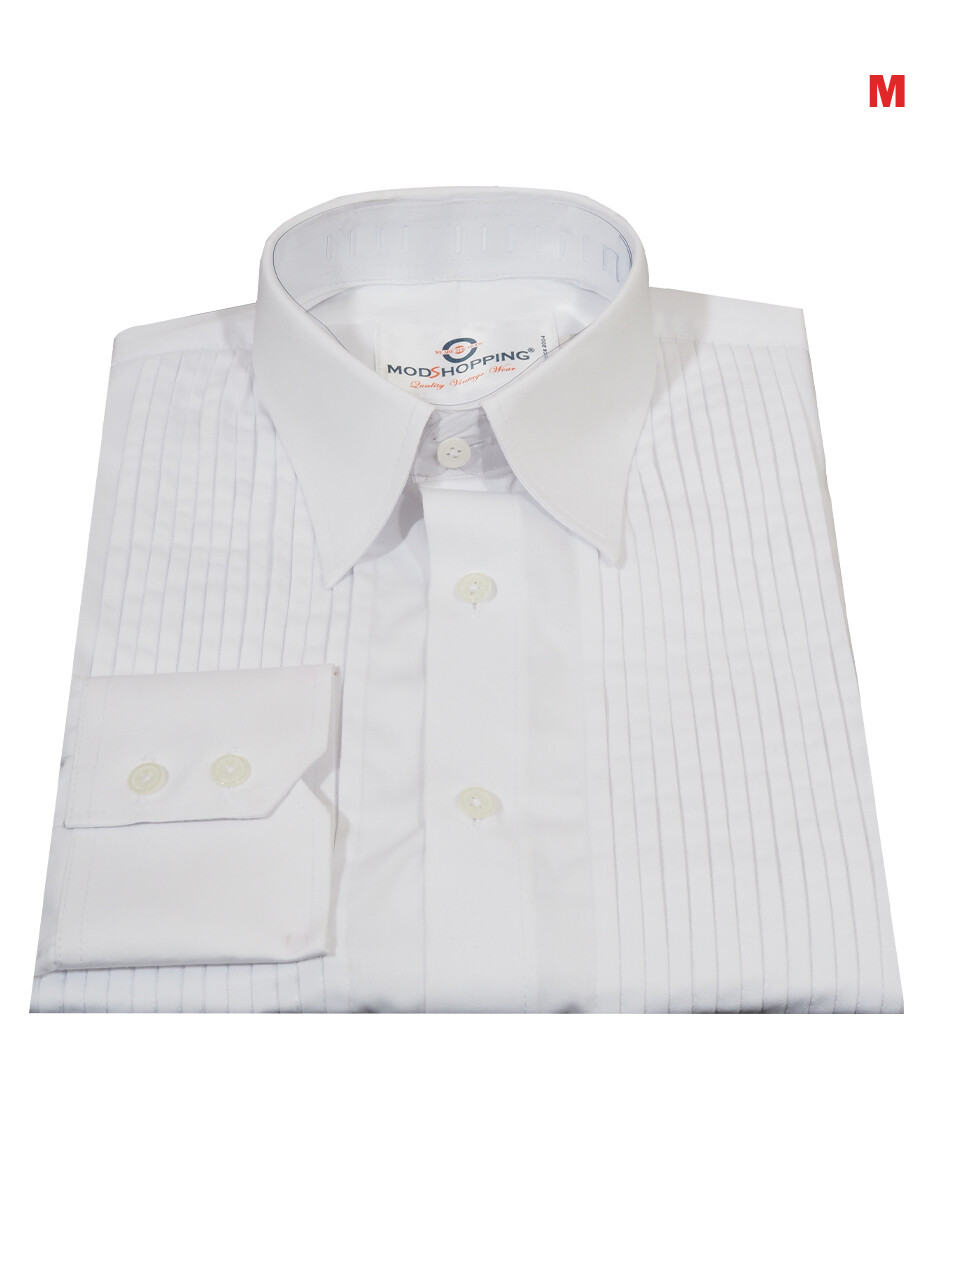 This Tuxedo Only. Tuxedo Shirt White Color For Man